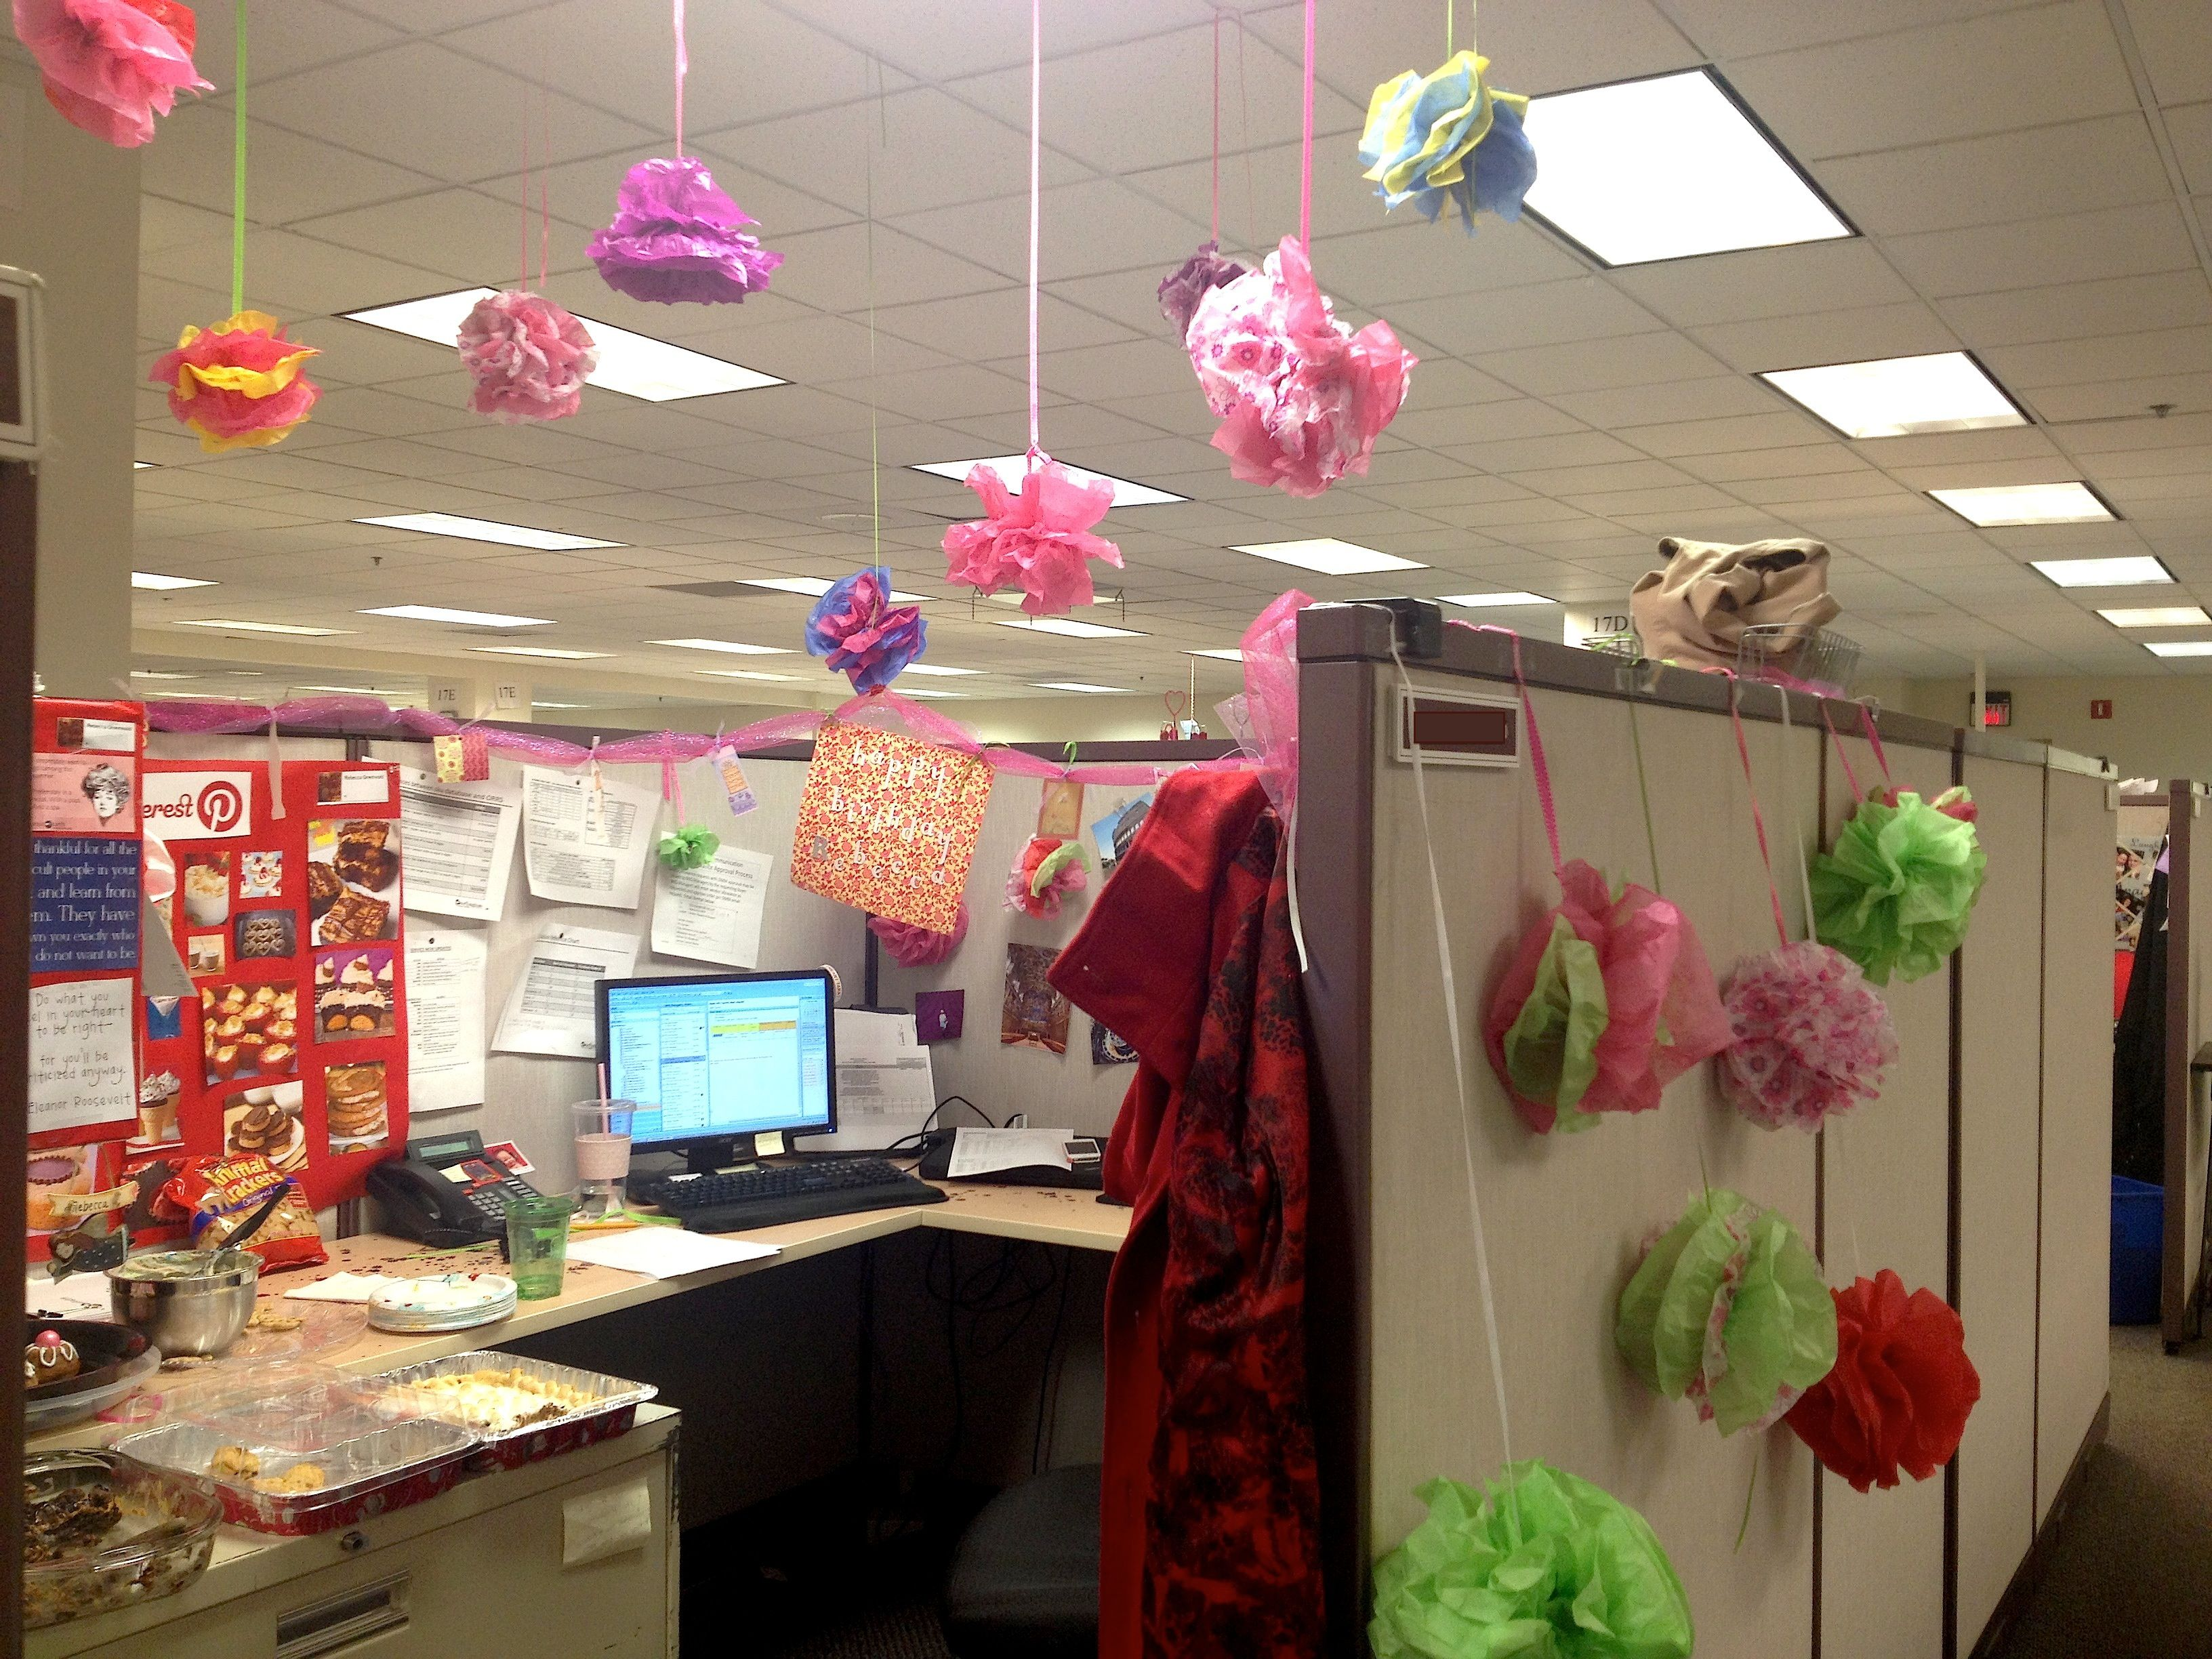 An employee39s office decorated for their birthday using for Decorated office